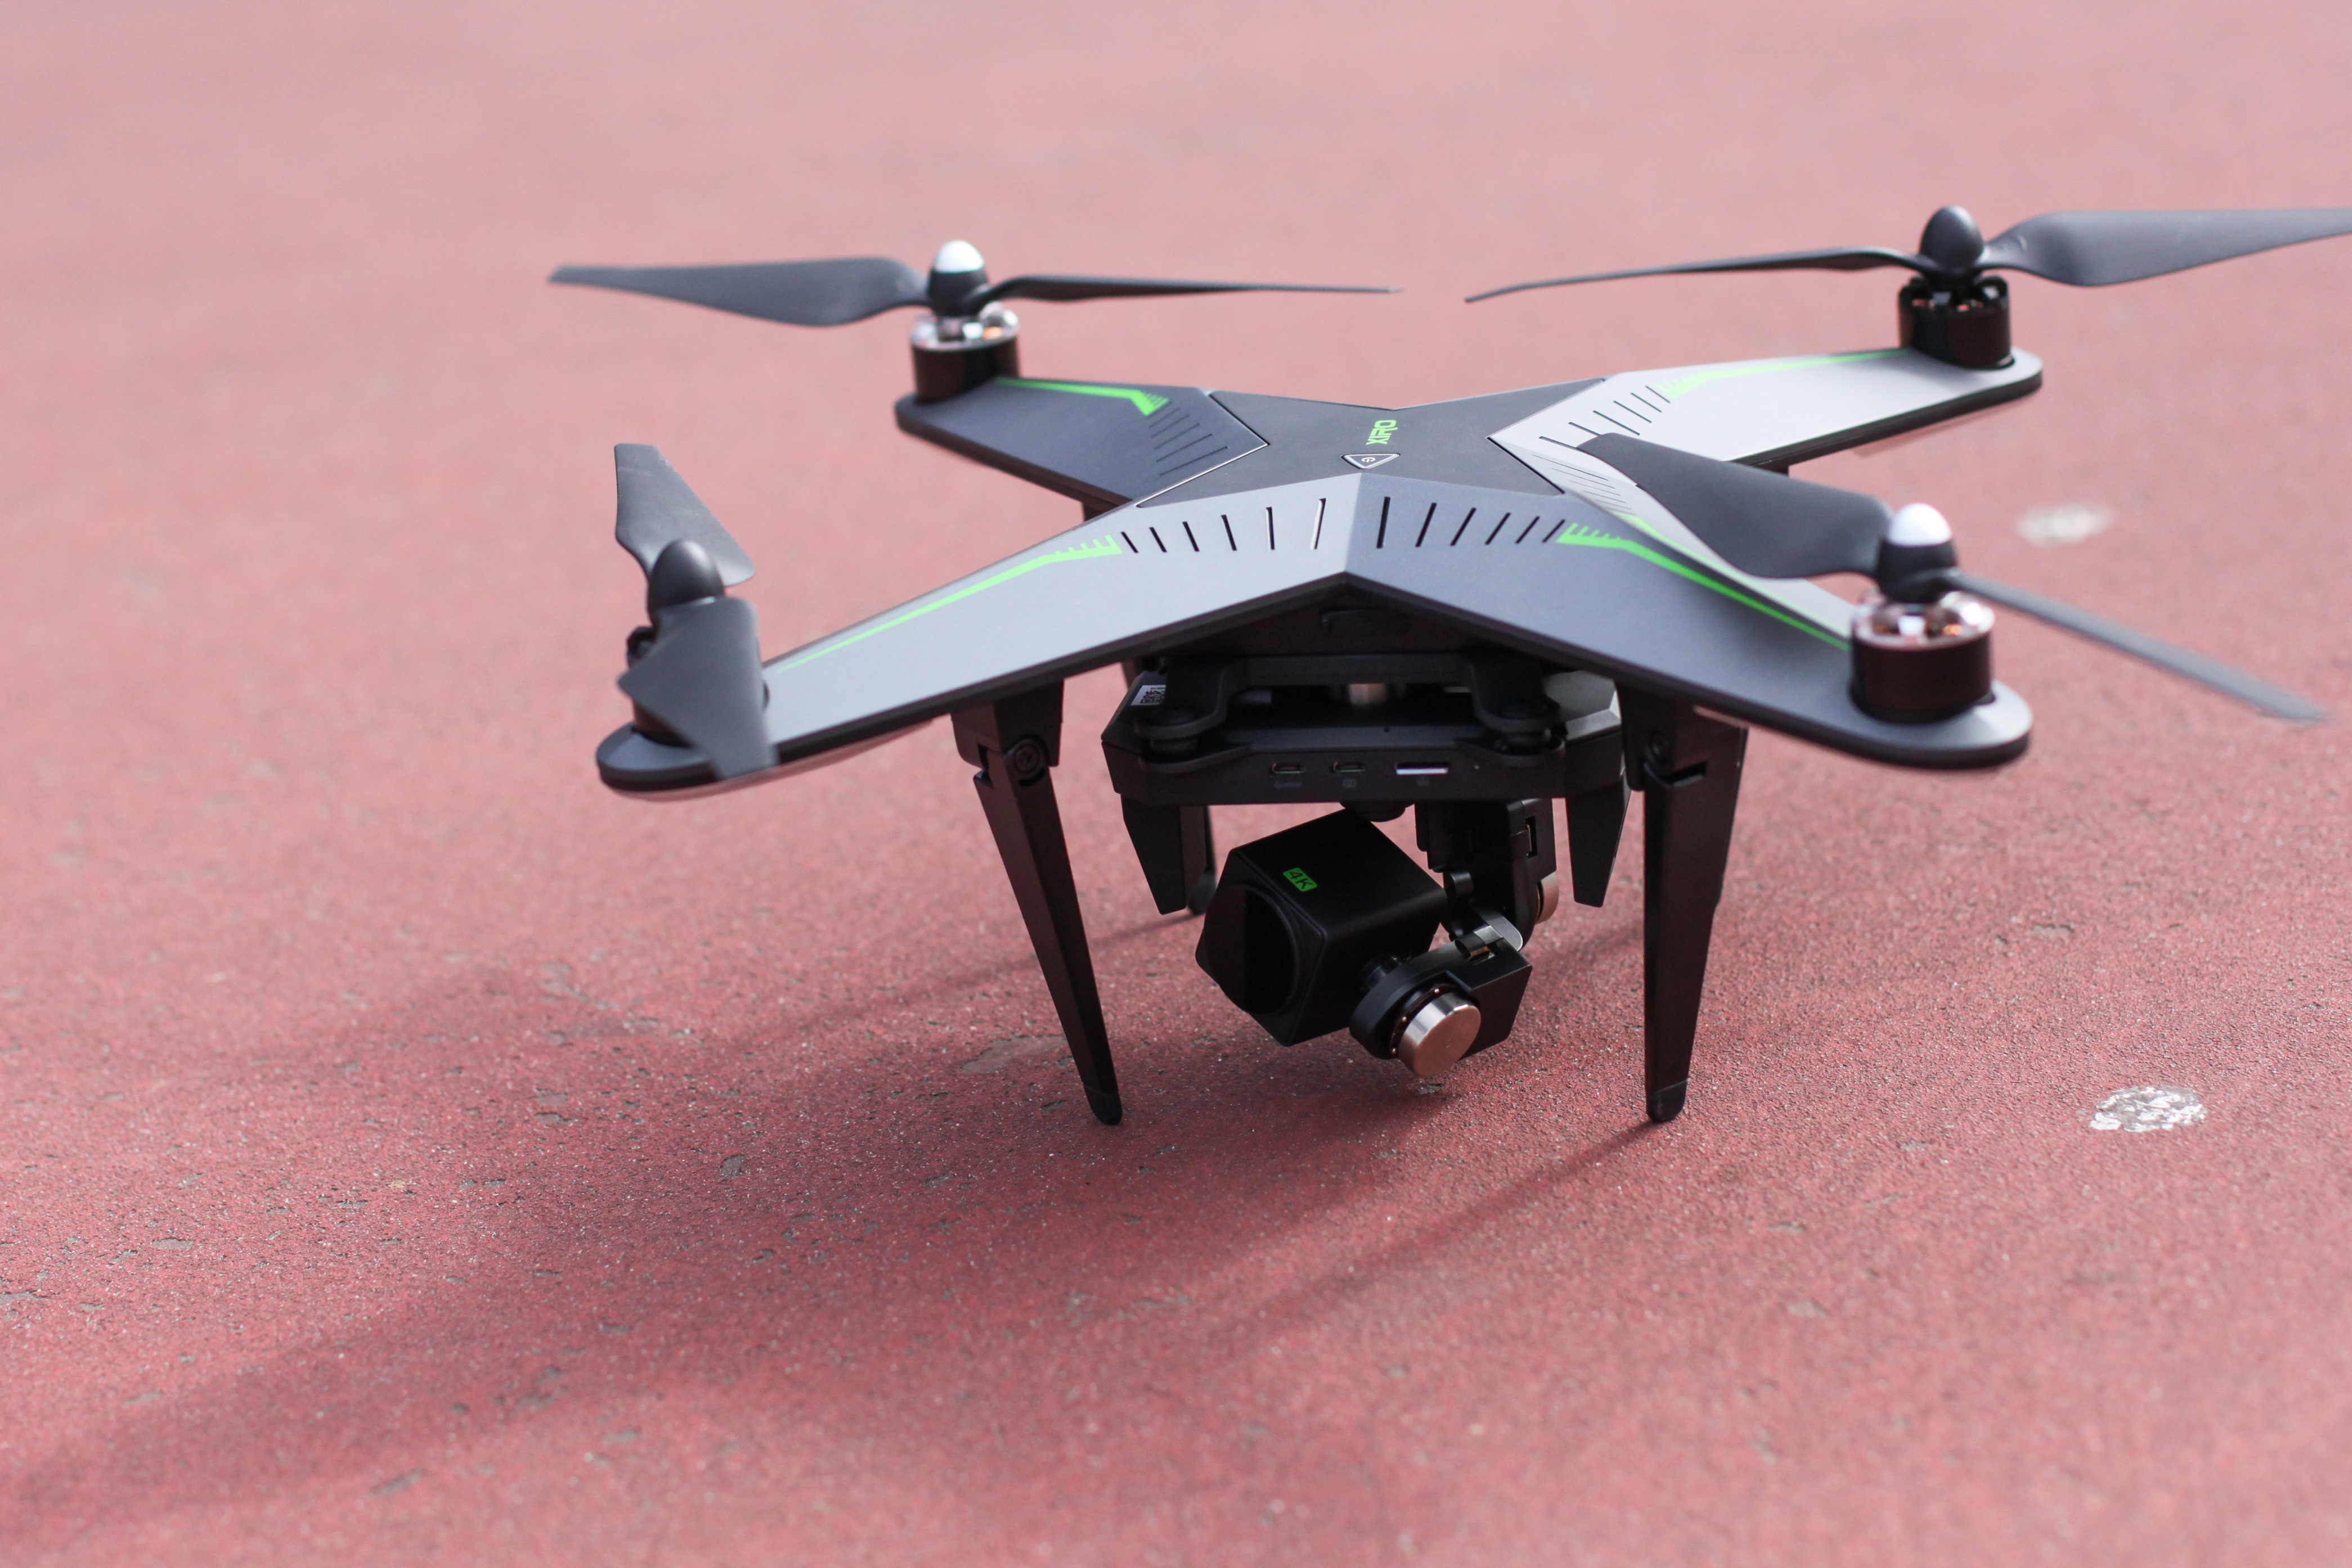 XIRO Xplorer 4K is another DJI Phantom competitor – but the camera and gimbal need work